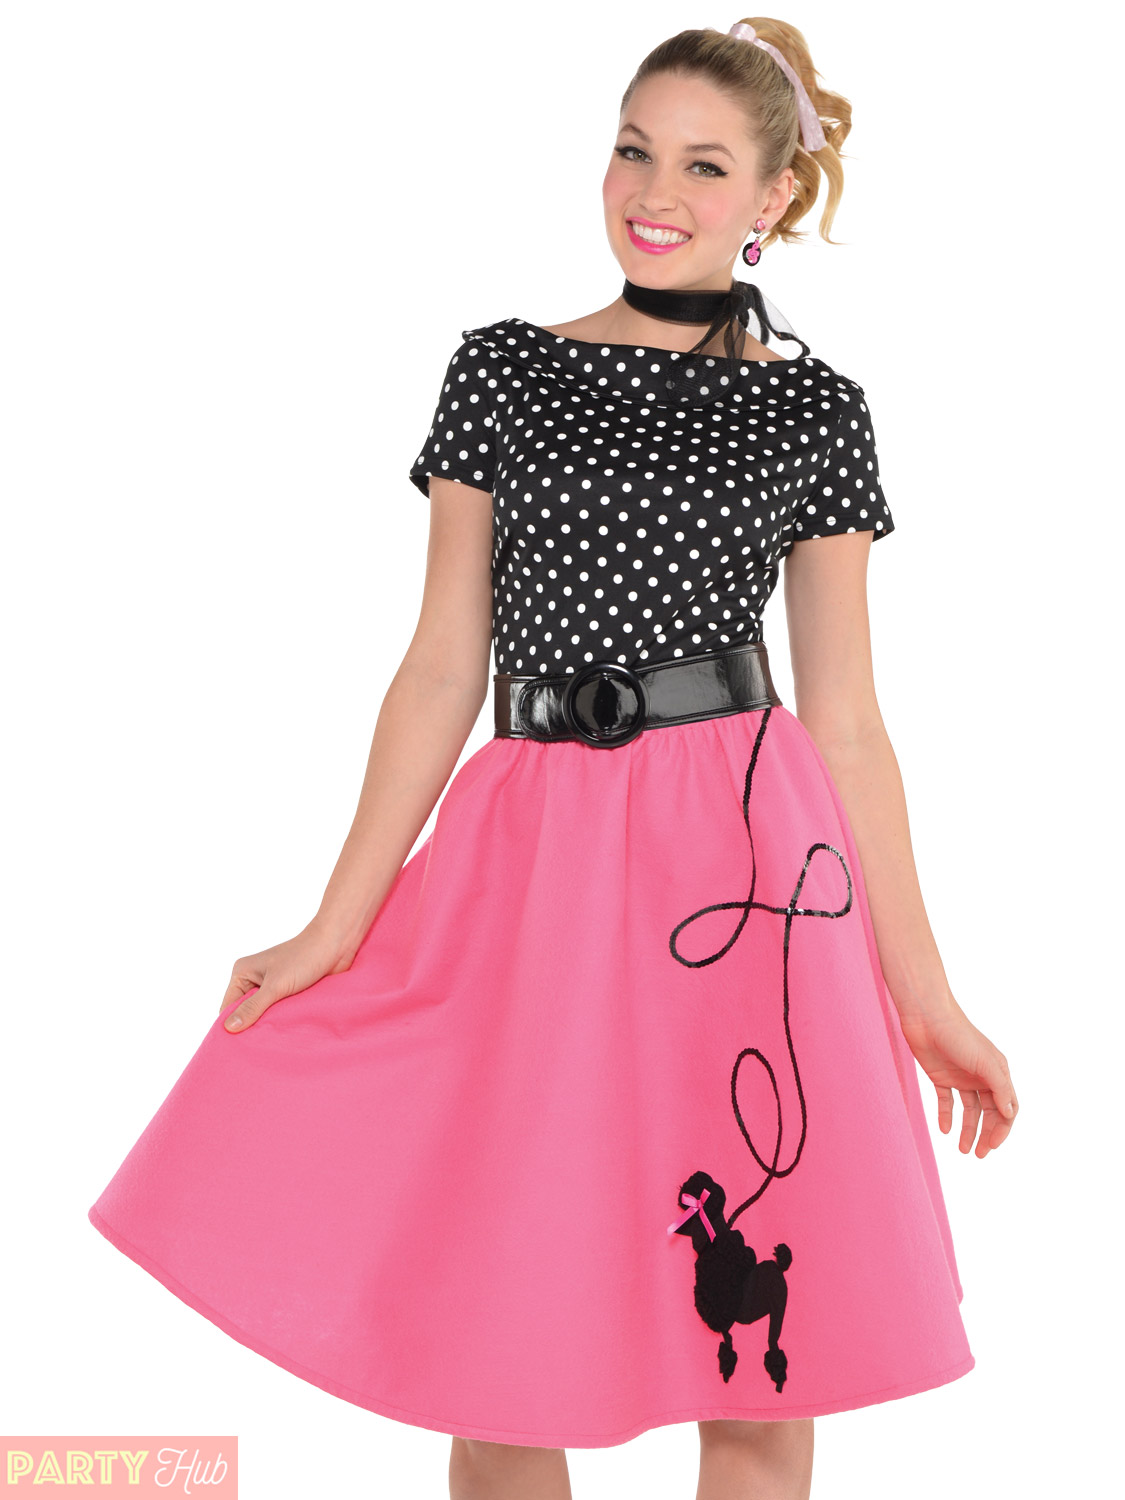 Fashion For Over Fiftys Women